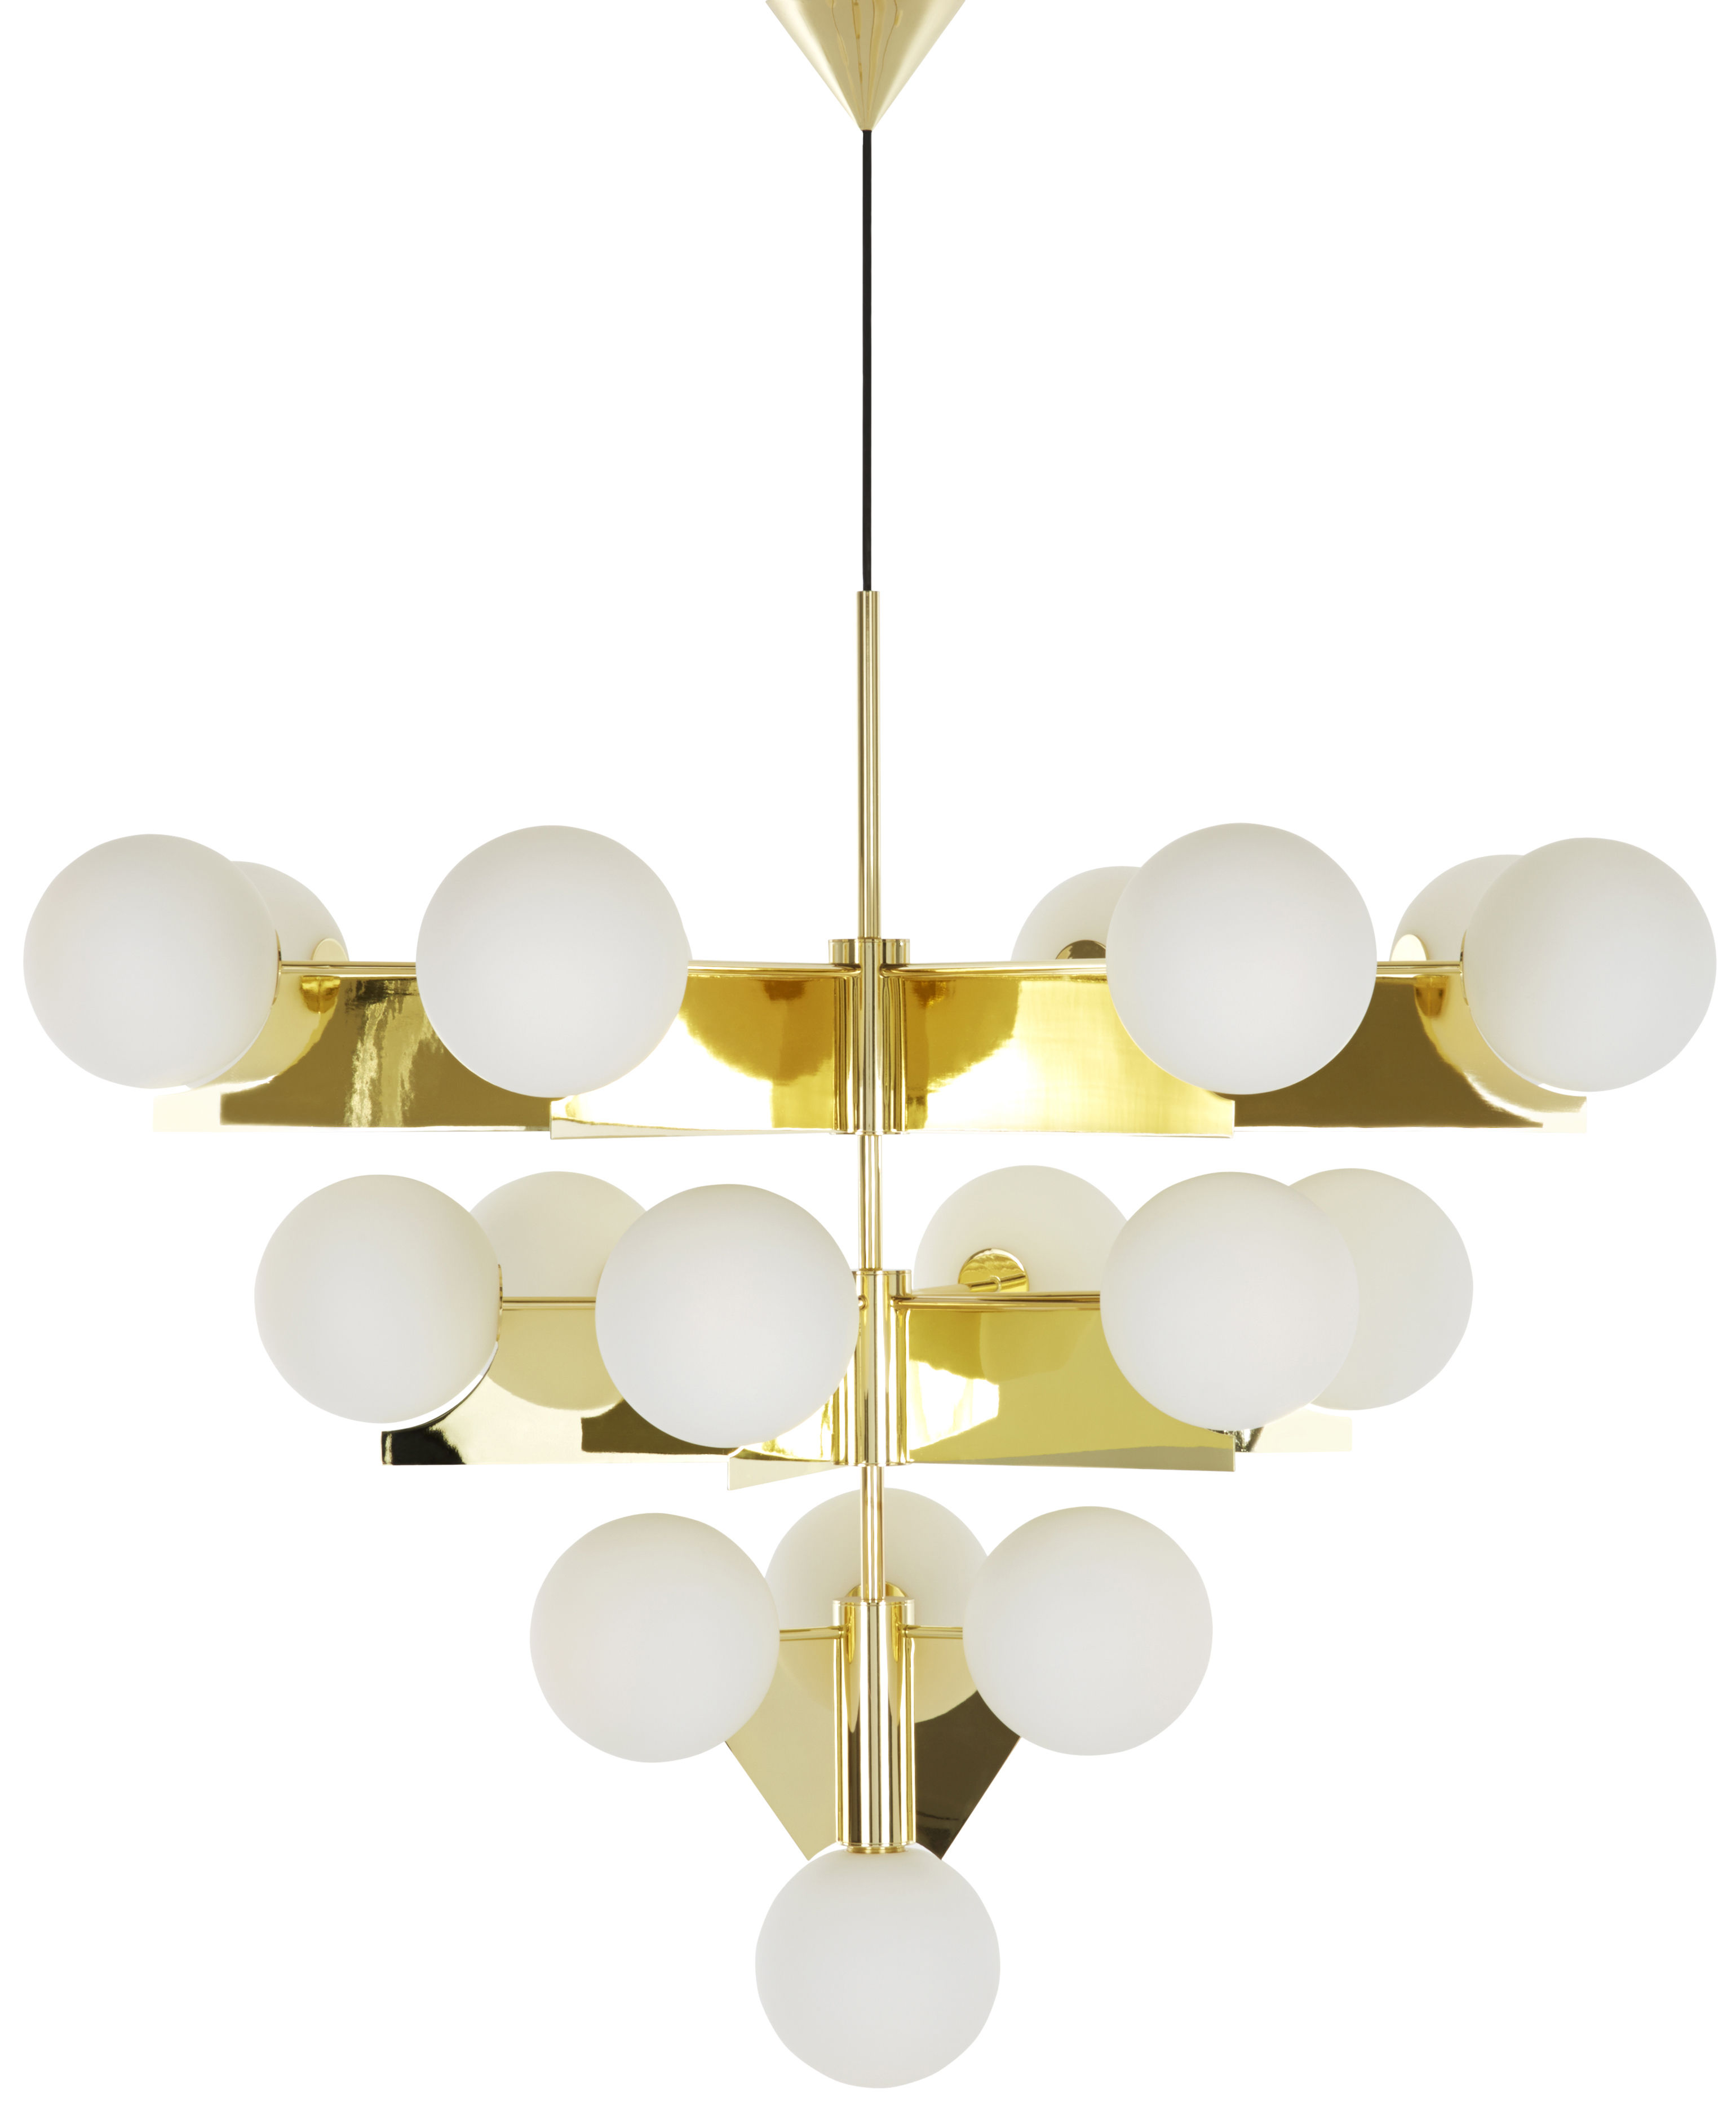 Lighting - Pendant Lighting - Plane Pendant by Tom Dixon - Polished brass - Brass plated steel, Glass